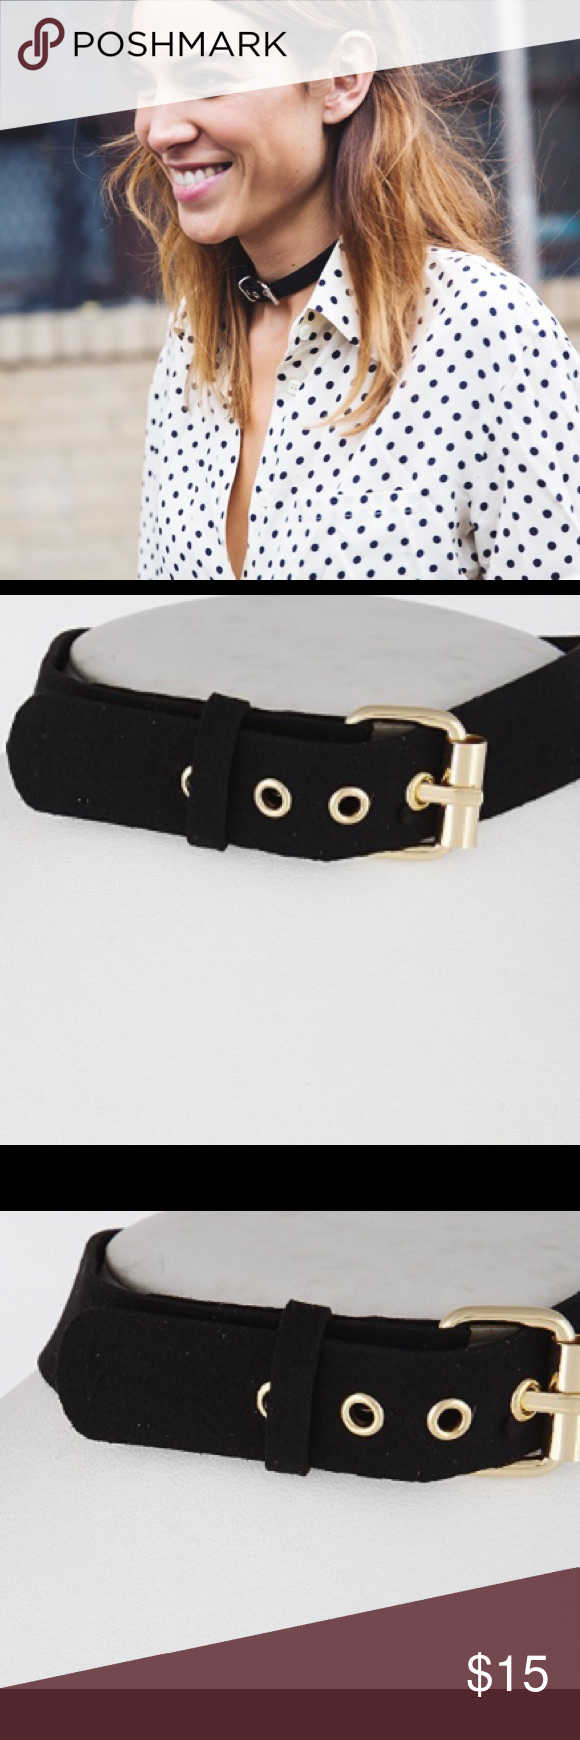 NWT || Black Velvet Thick Buckle Choker Necklace Black Velvet Thick Buckle Choker Necklace. As seen on Alexa Chung. First image is for inspiration only and not actual necklace. Price is firm unless bundled. Bundle 4 or more and save 20%. ASOS Jewelry Necklaces